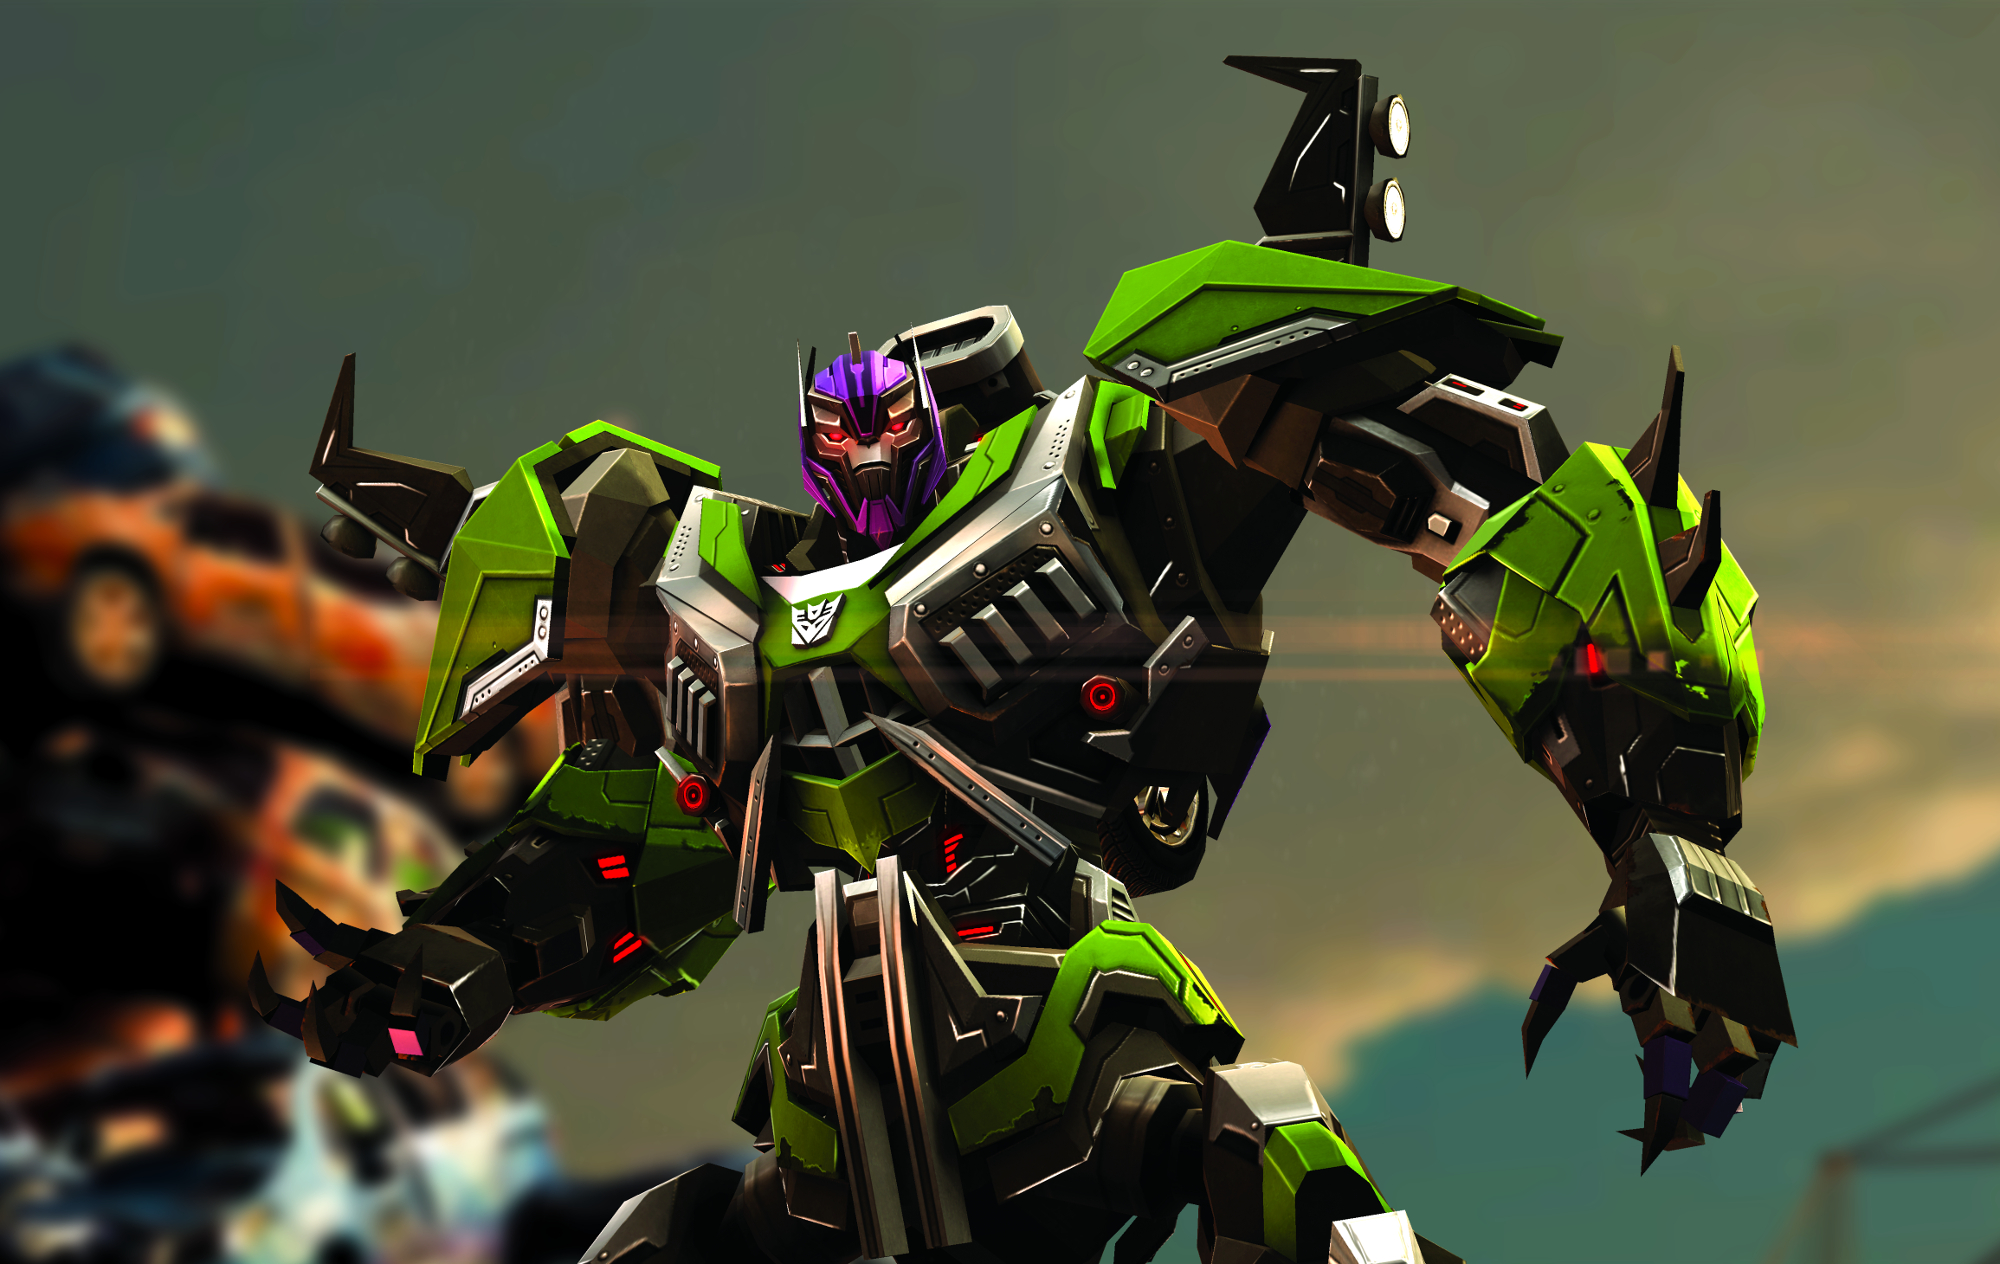 Hasbro has approved all the new Transformers created by Jagex.